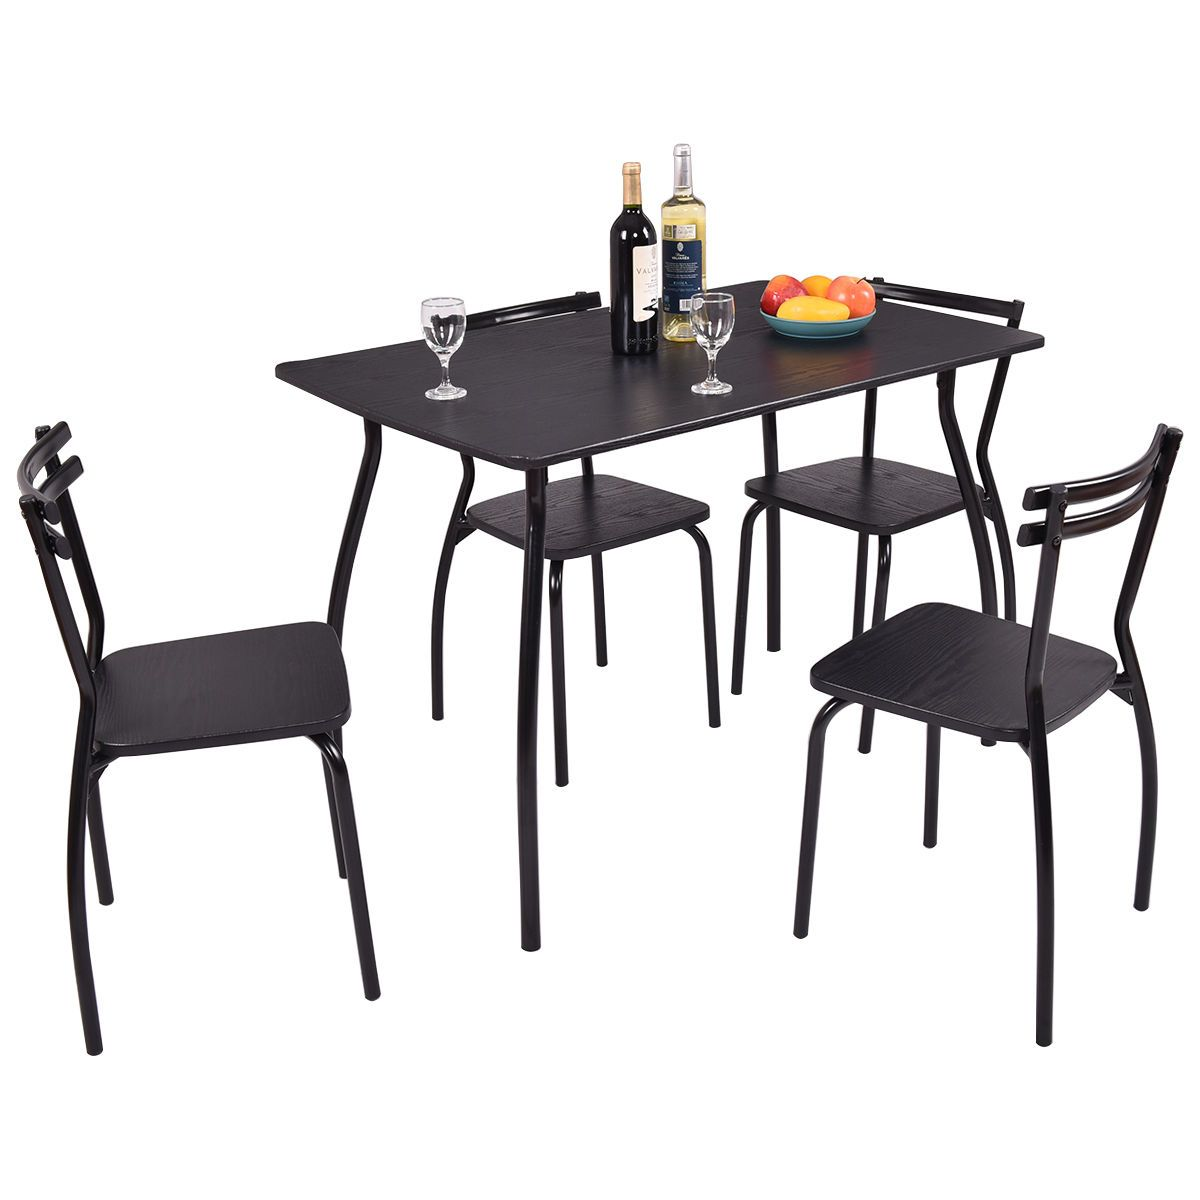 5 Piece Modern Home Kitchen Dining Set